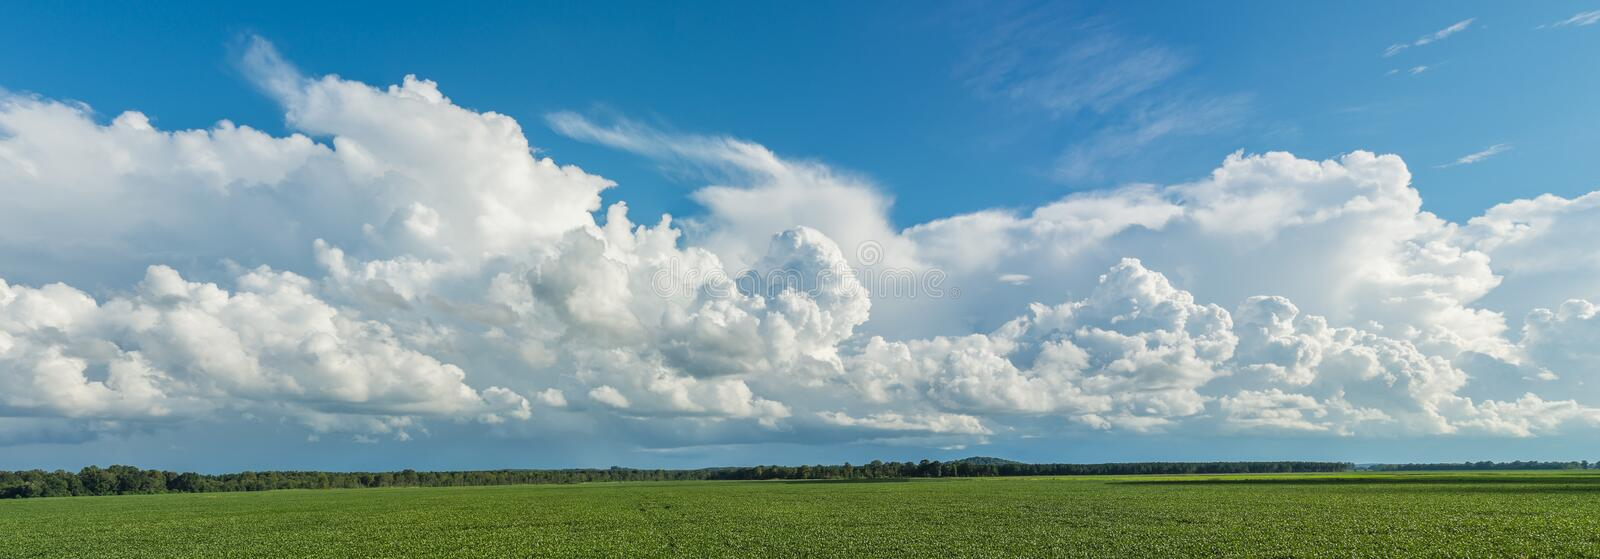 Cold Front Clouds Panorama Background. Panoramic capture of cold front and clouds moving in over a southern soybean field stock photography